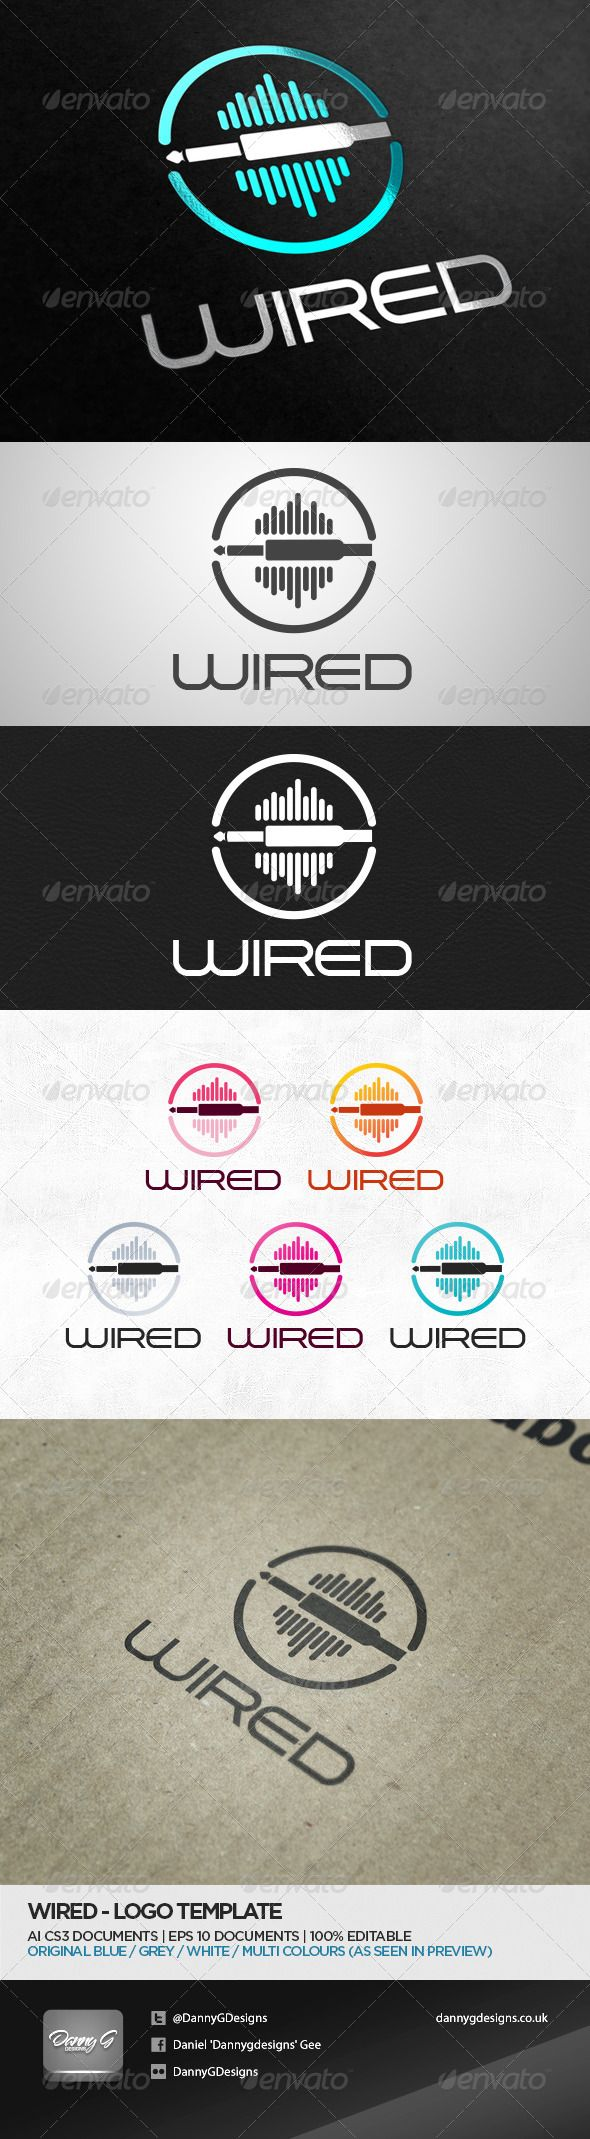 Wired  - Logo Design Template Vector #logotype Download it here: http://graphicriver.net/item/wired-logo-template/5243420?s_rank=1464?ref=nexion